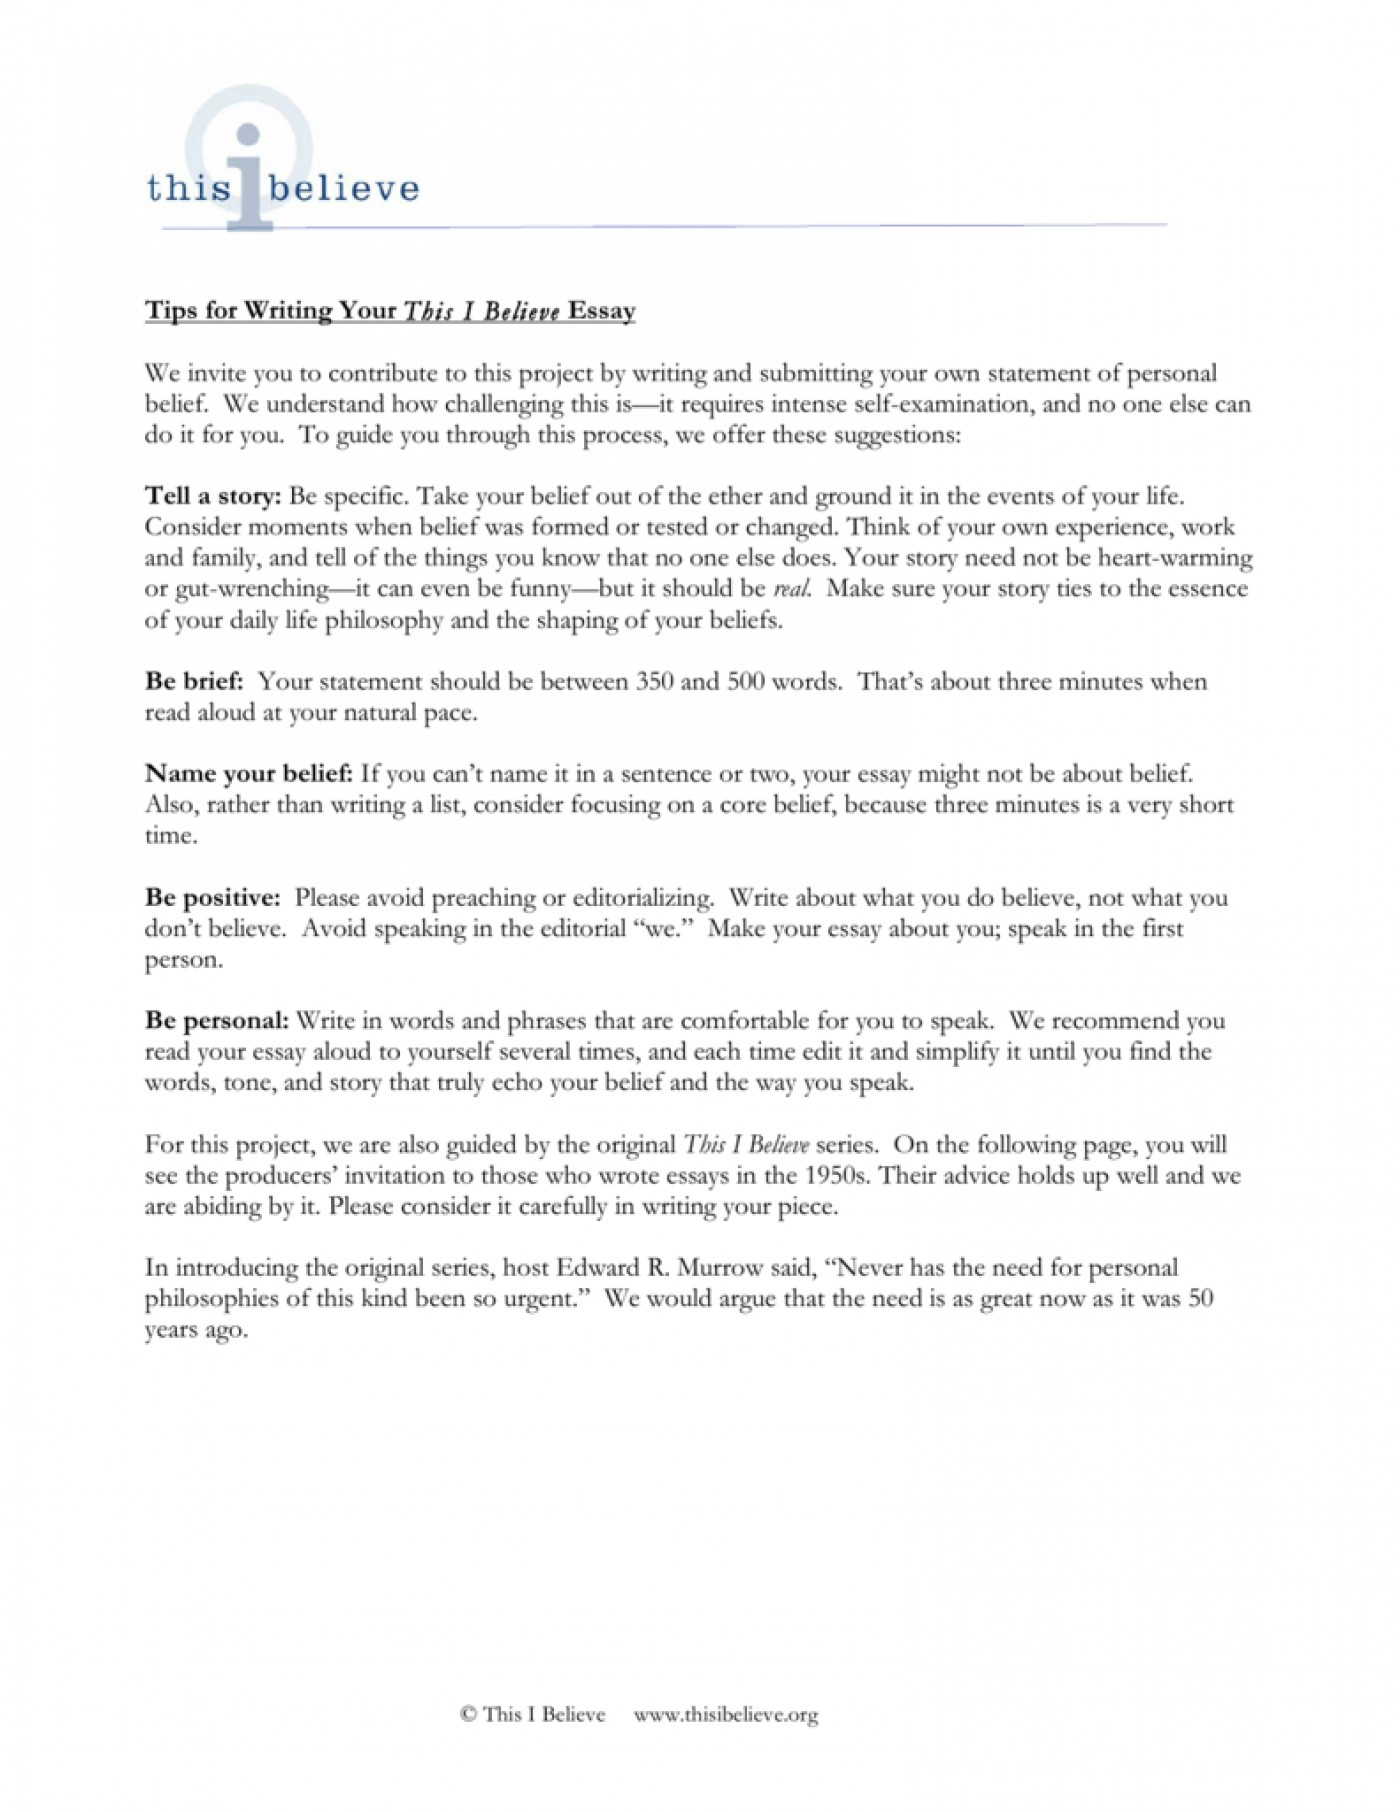 005 Essay Example How To Write This I Believe 008807221 1 Fantastic A Things On What 1400